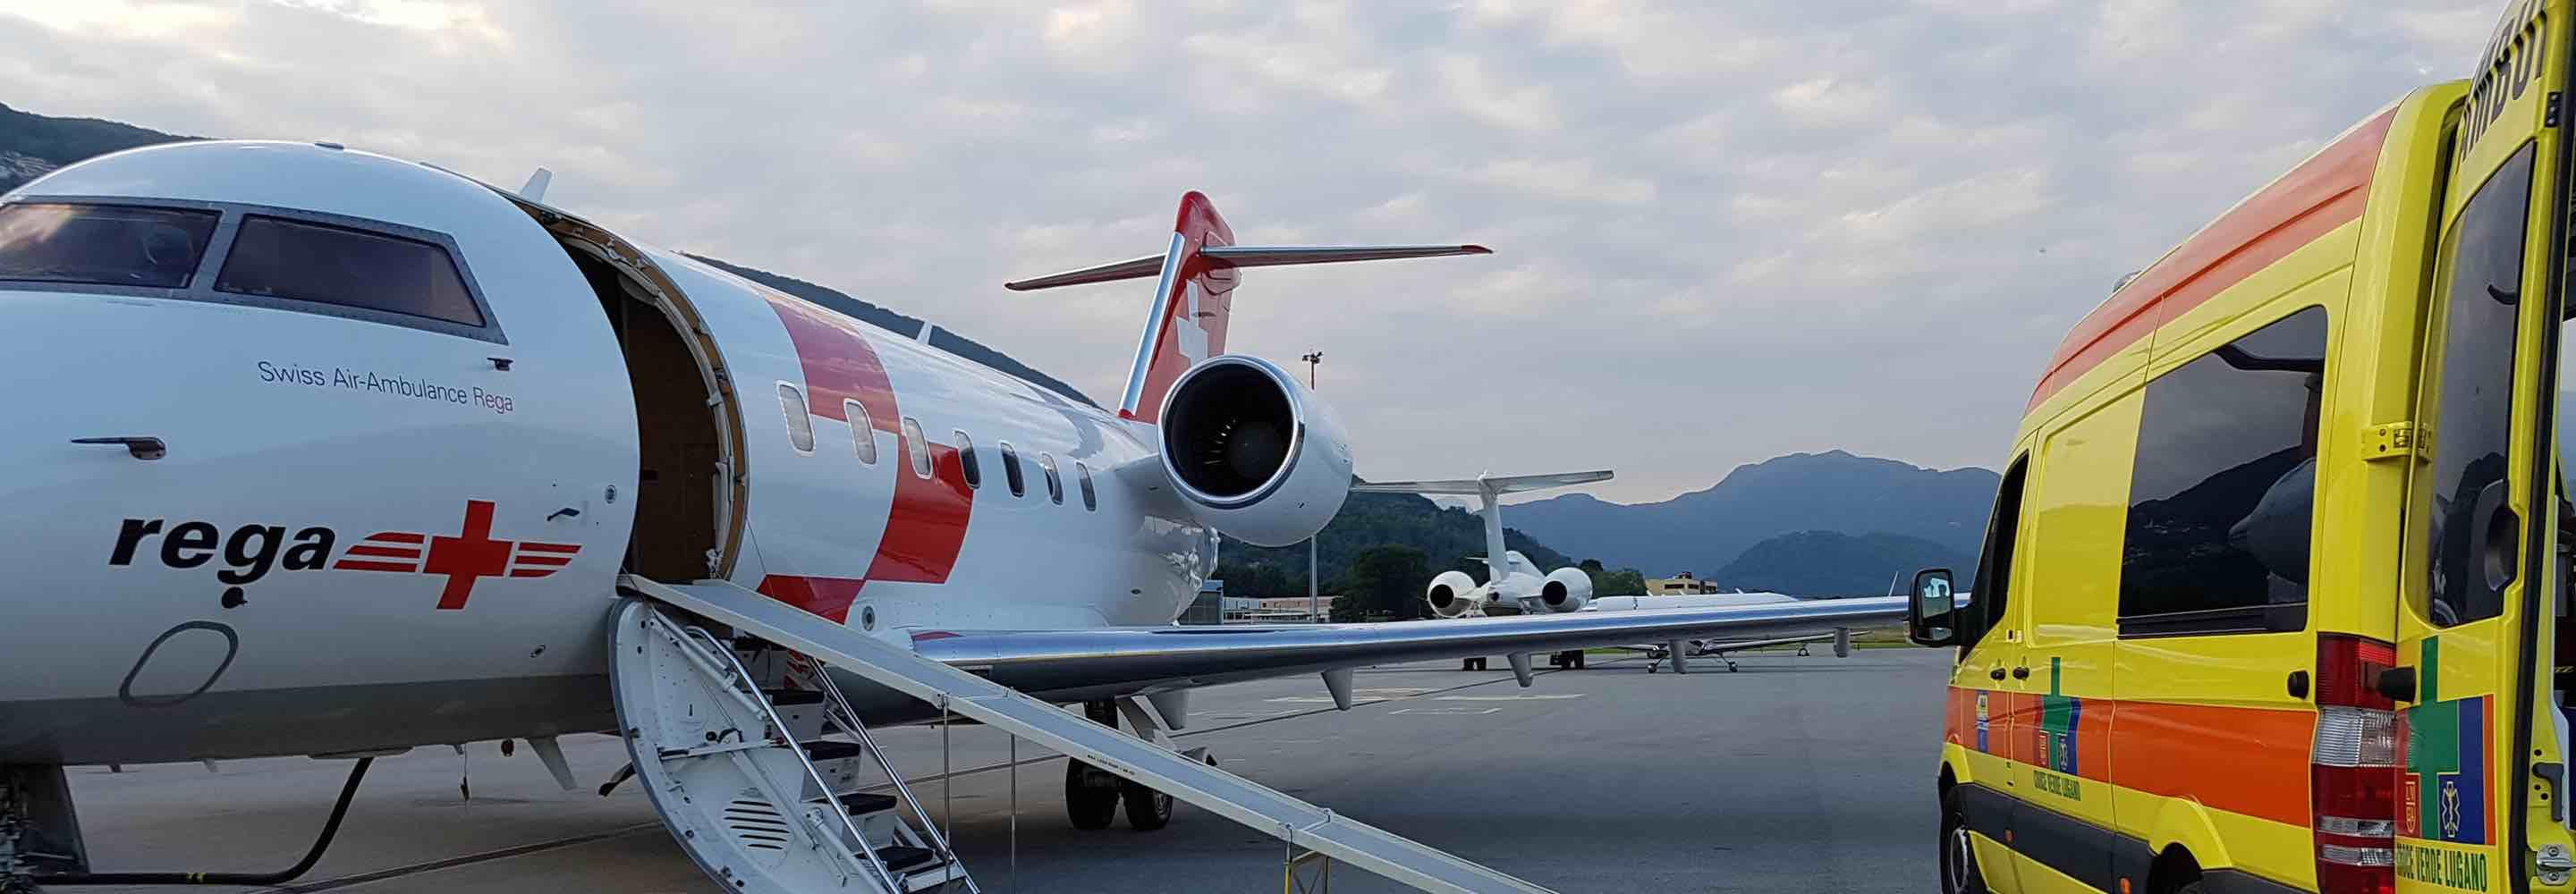 Rega Swiss Air Ambulance private jet on the tarmac illustrating special charters and medical flights